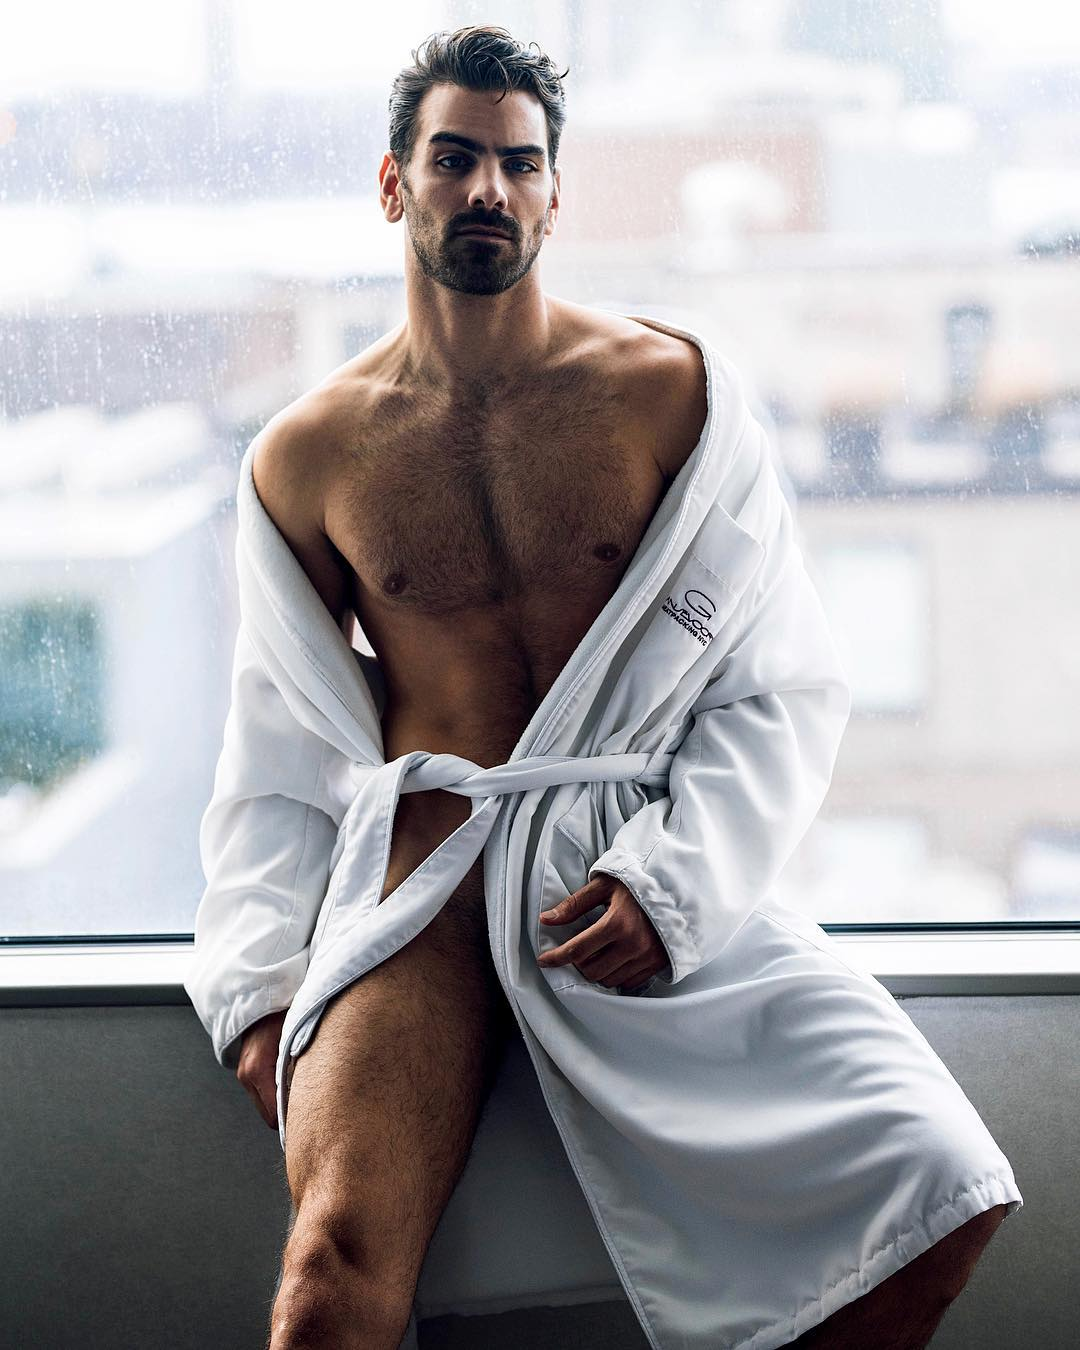 Angelica Larsson Nude hot topic show - henrik larsson : nyle dimarco - hot nude